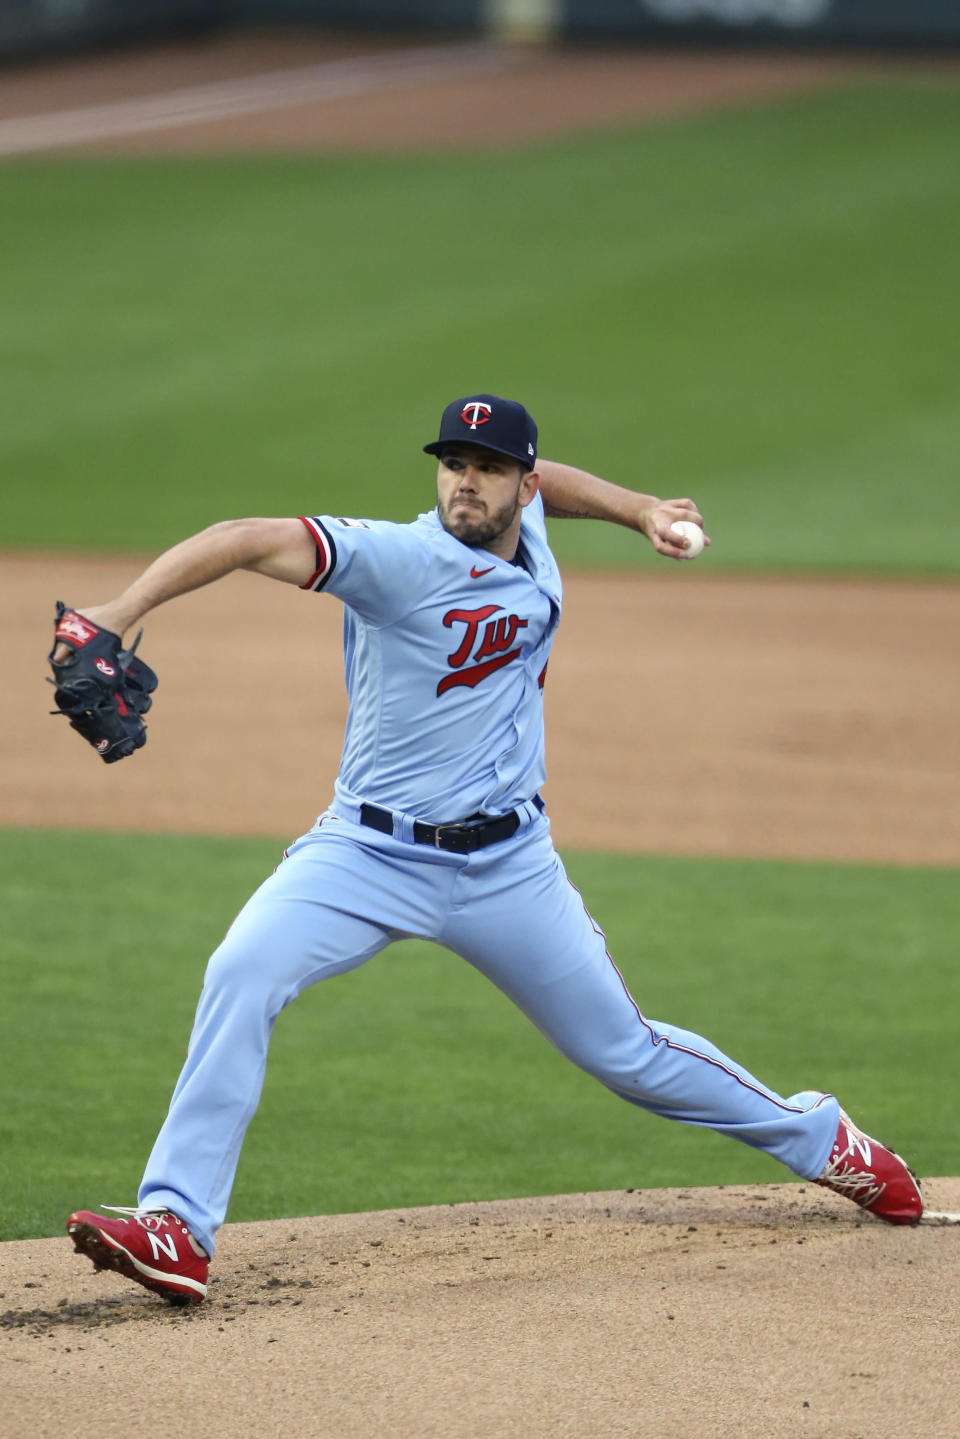 Minnesota Twins pitcher Lewis Thorpe throws to a Texas Rangers batter during the first inning of a baseball gameWednesday, May 5, 2021, in Minneapolis. (AP Photo/Stacy Bengs)